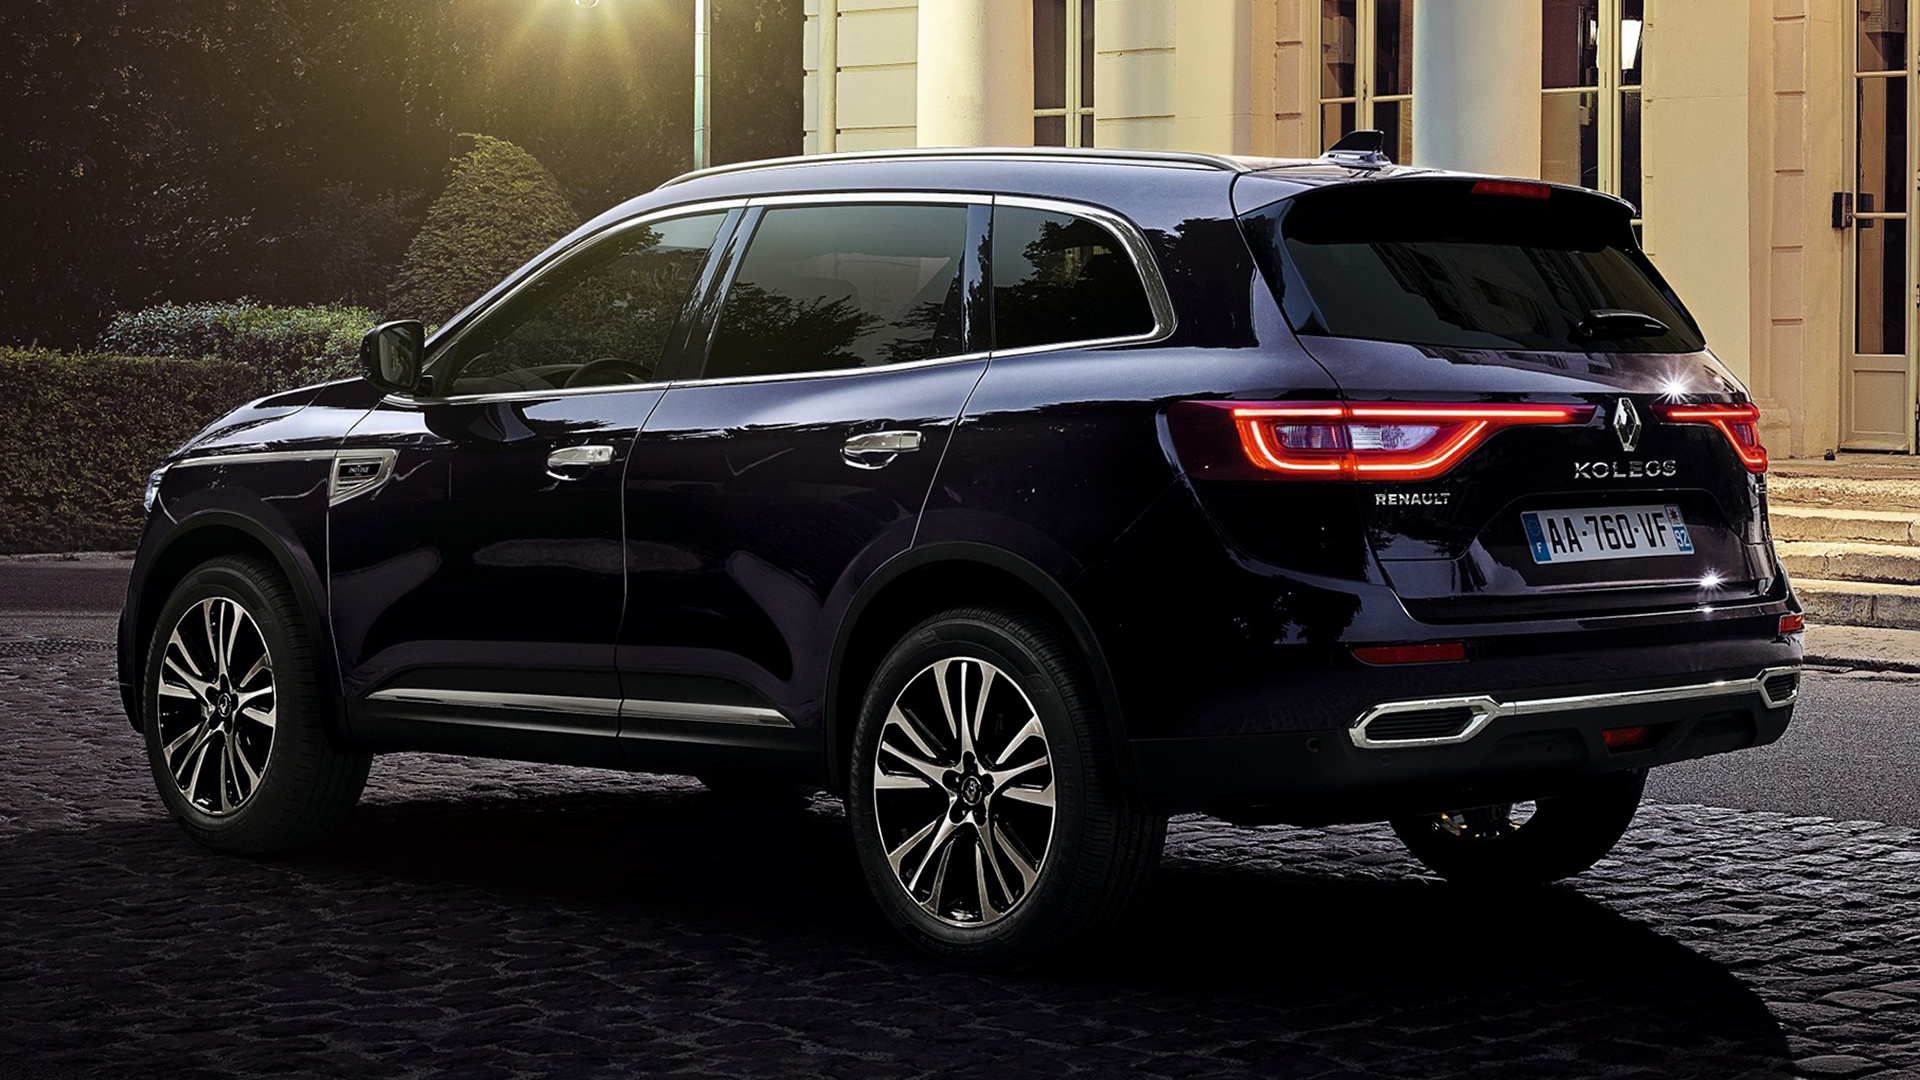 Renault Koleos Initiale Paris (2016) Wallpapers and HD ...